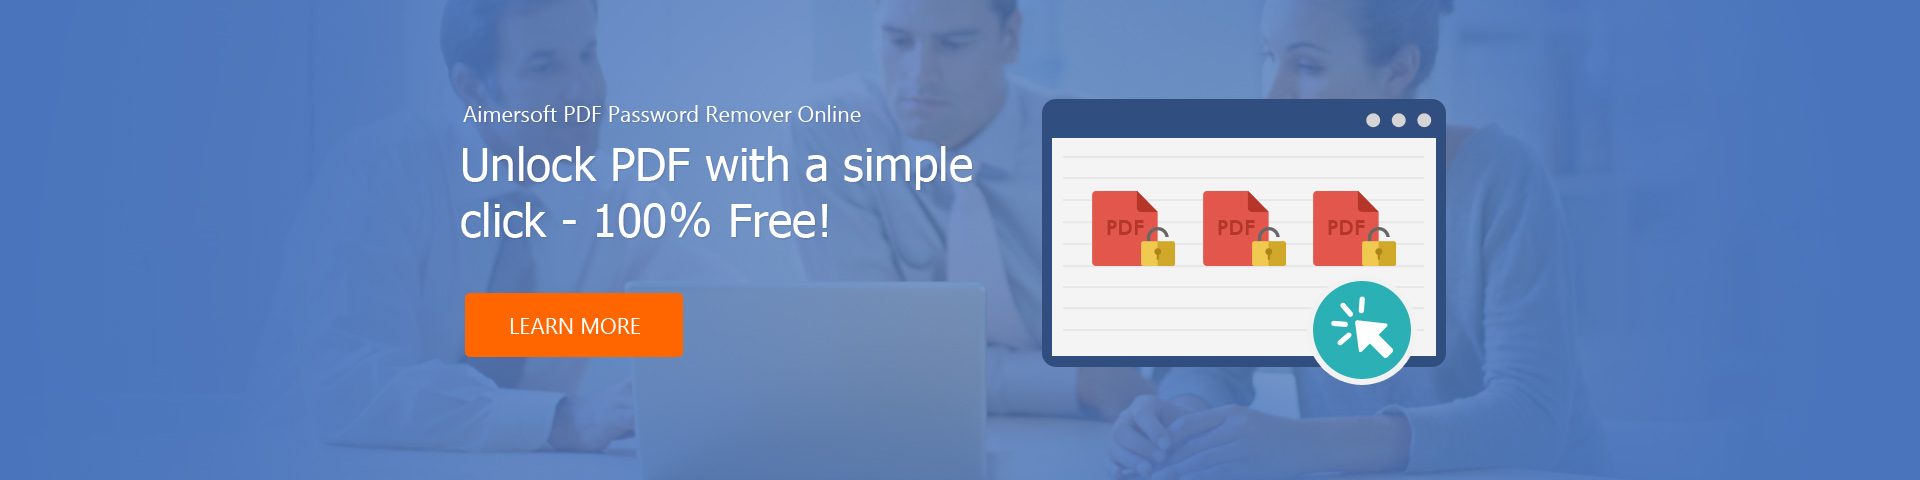 Aimersoft PDF Password Remover Online